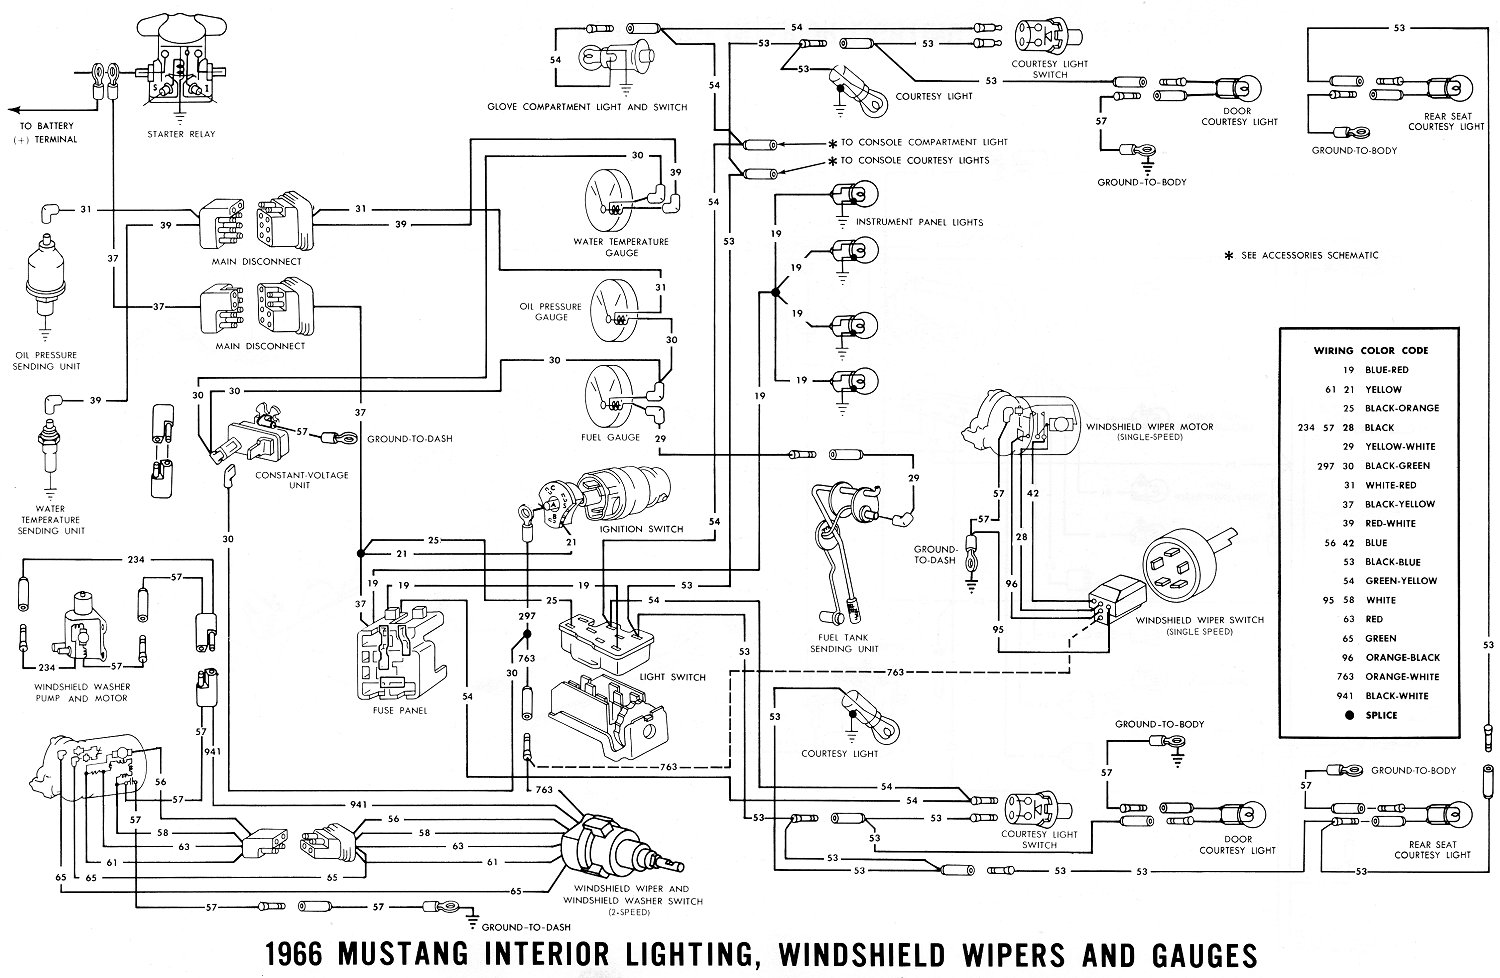 Wiring Diagram Needed 4 Headlight Amp Ign Switchs